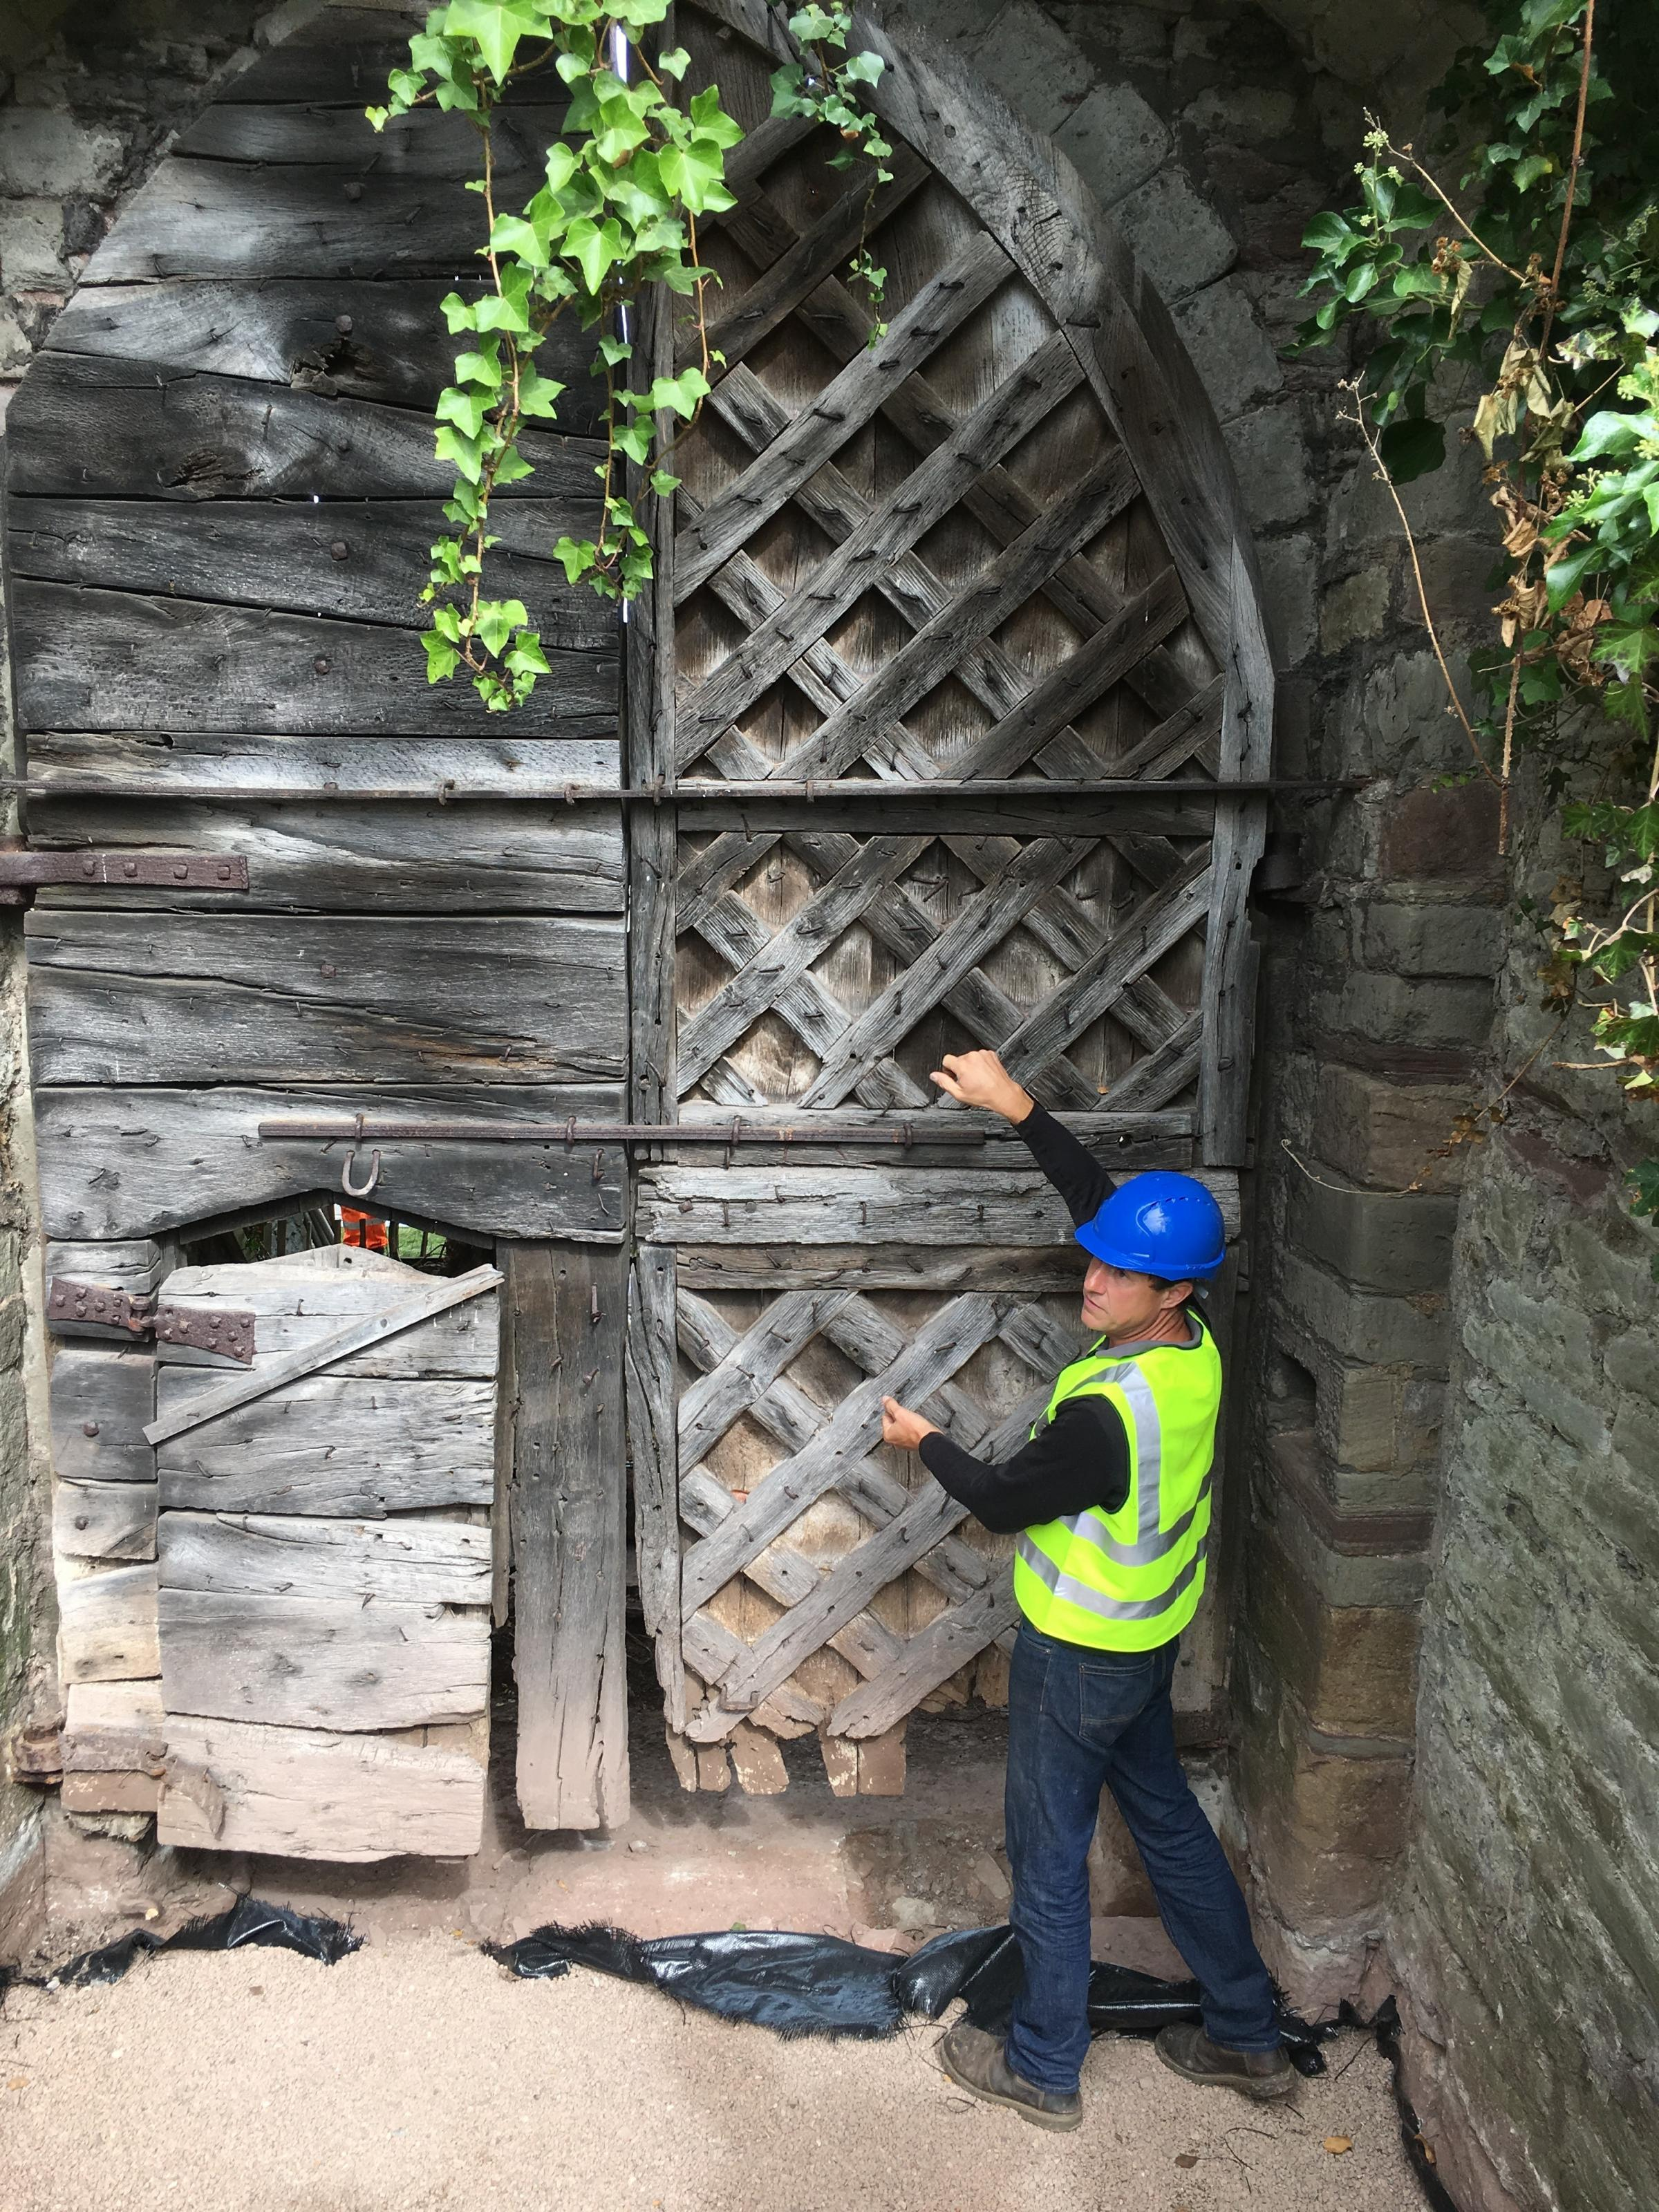 John Best from John Nethercott & Co. inspecting the gates before their removal